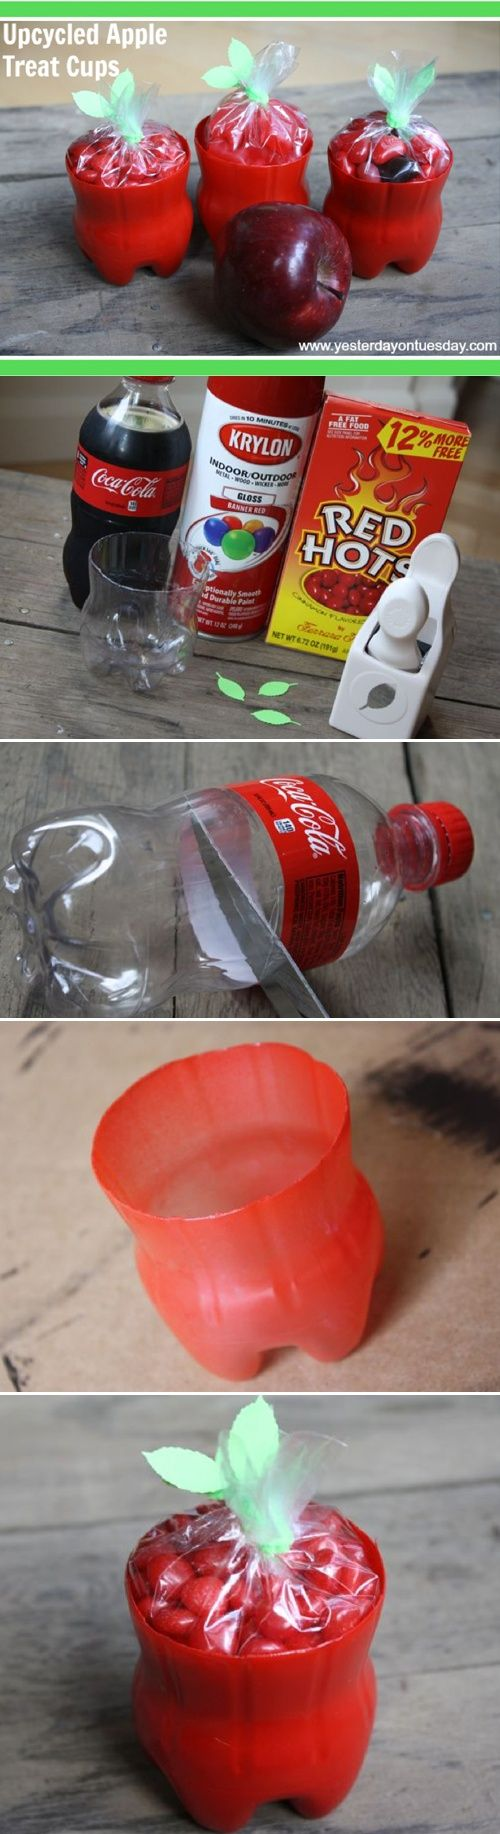 DIY Plastic Bottle Apple Treat Cup